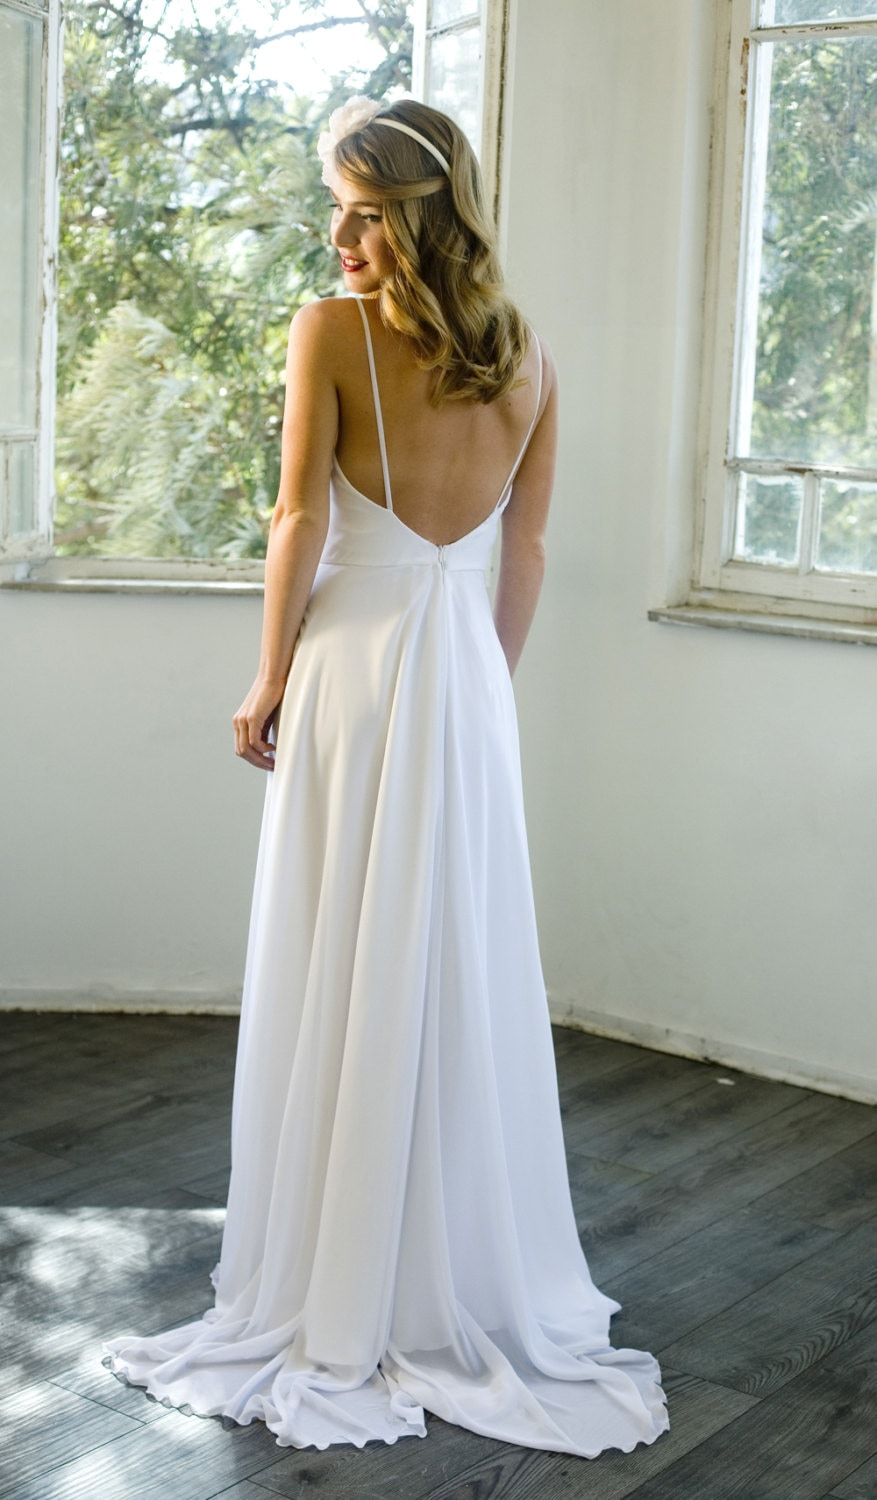 Romantic White Chiffon Beach Wedding Dress Low Back Wedding